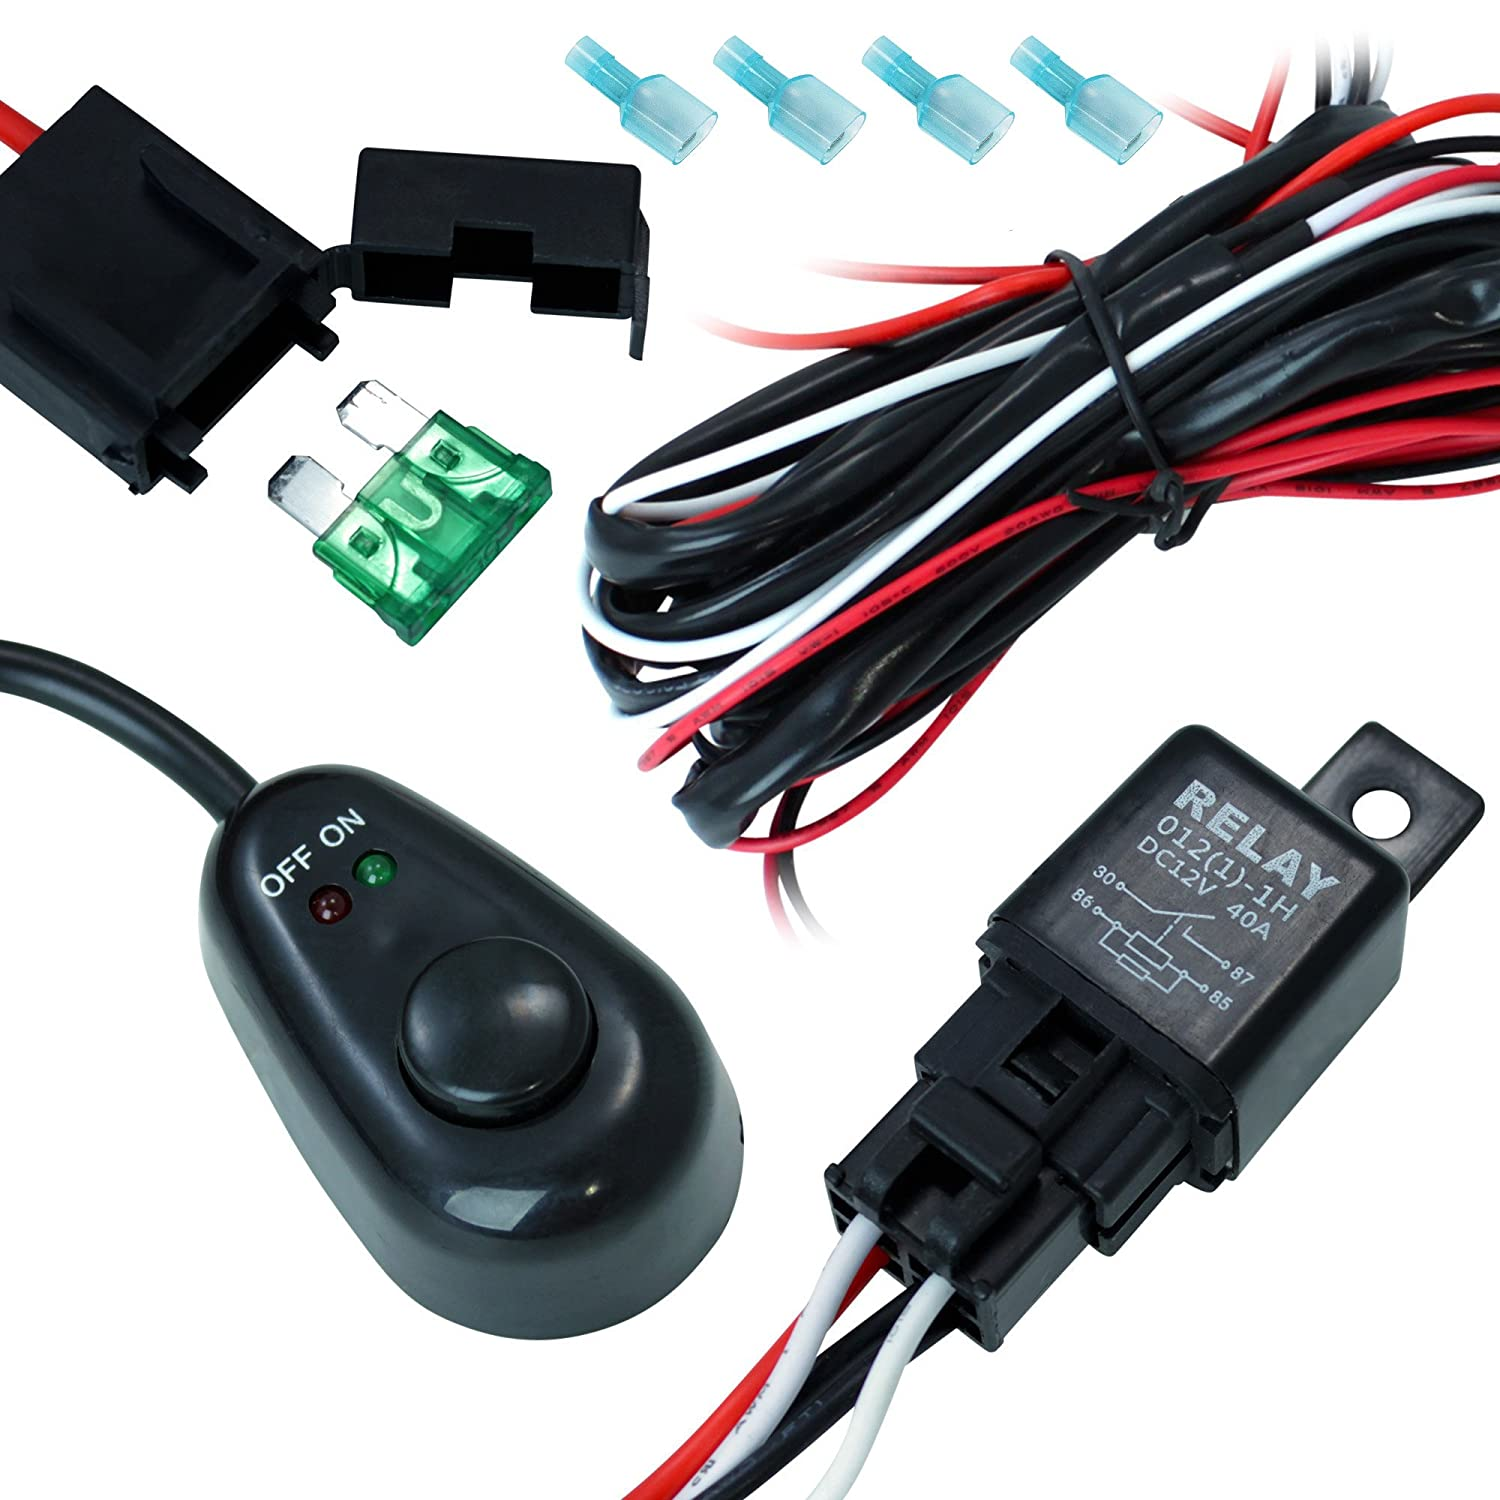 8160vxJfFvL._SL1500_ amazon com dt moto™ off road atv jeep led light bar wiring off road wiring harness at gsmx.co